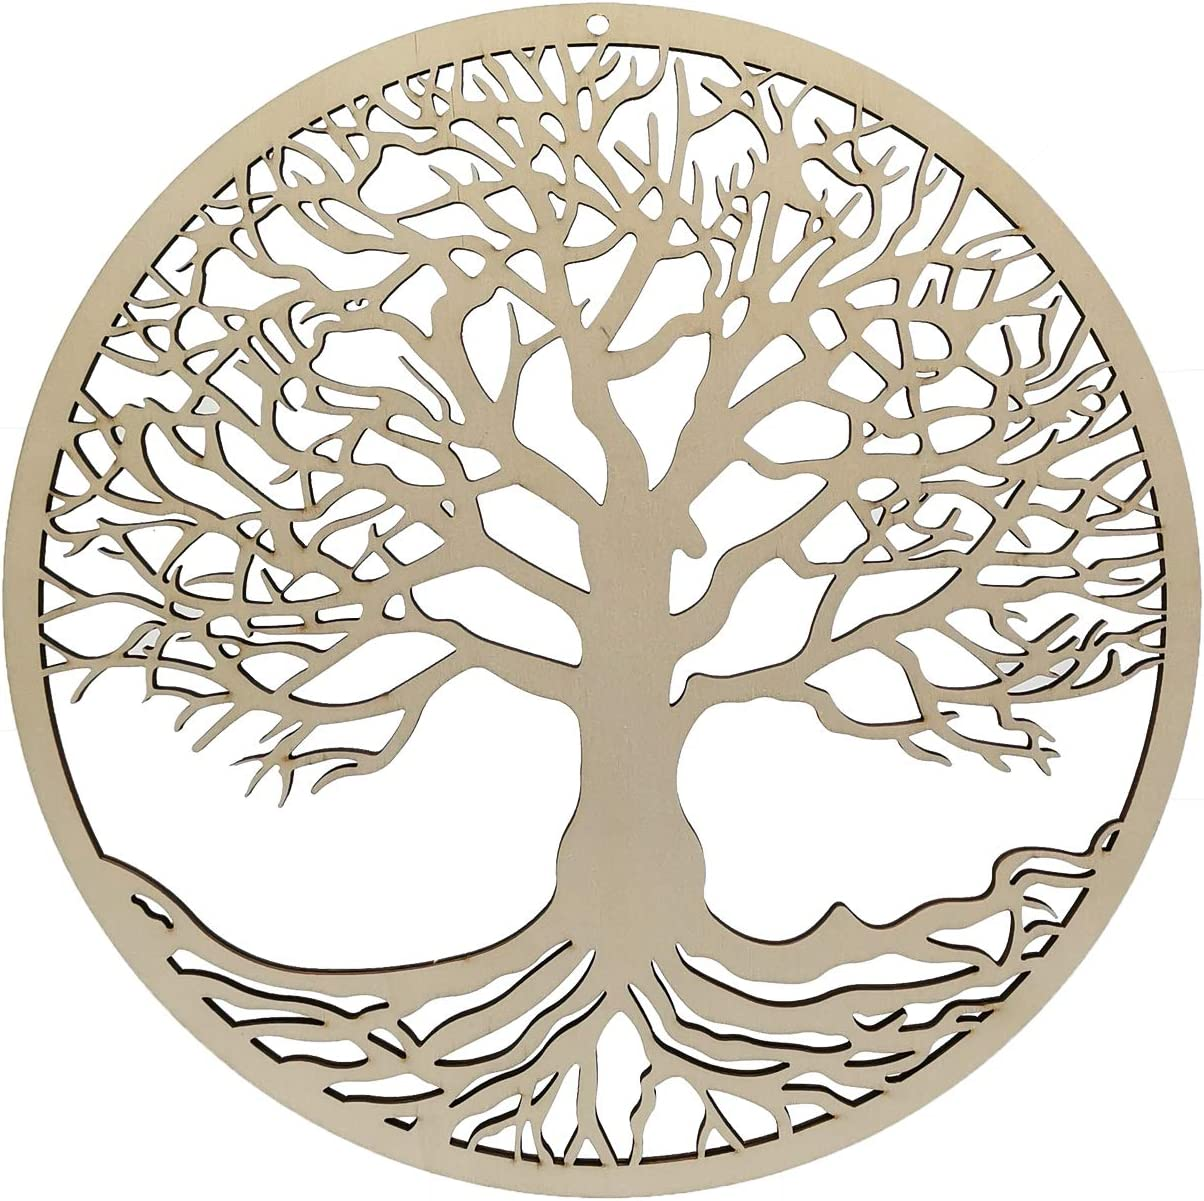 EONBES Tree of Life Wall Art Wall Hanging, Yoga Decor, Wooden, 11 Inches